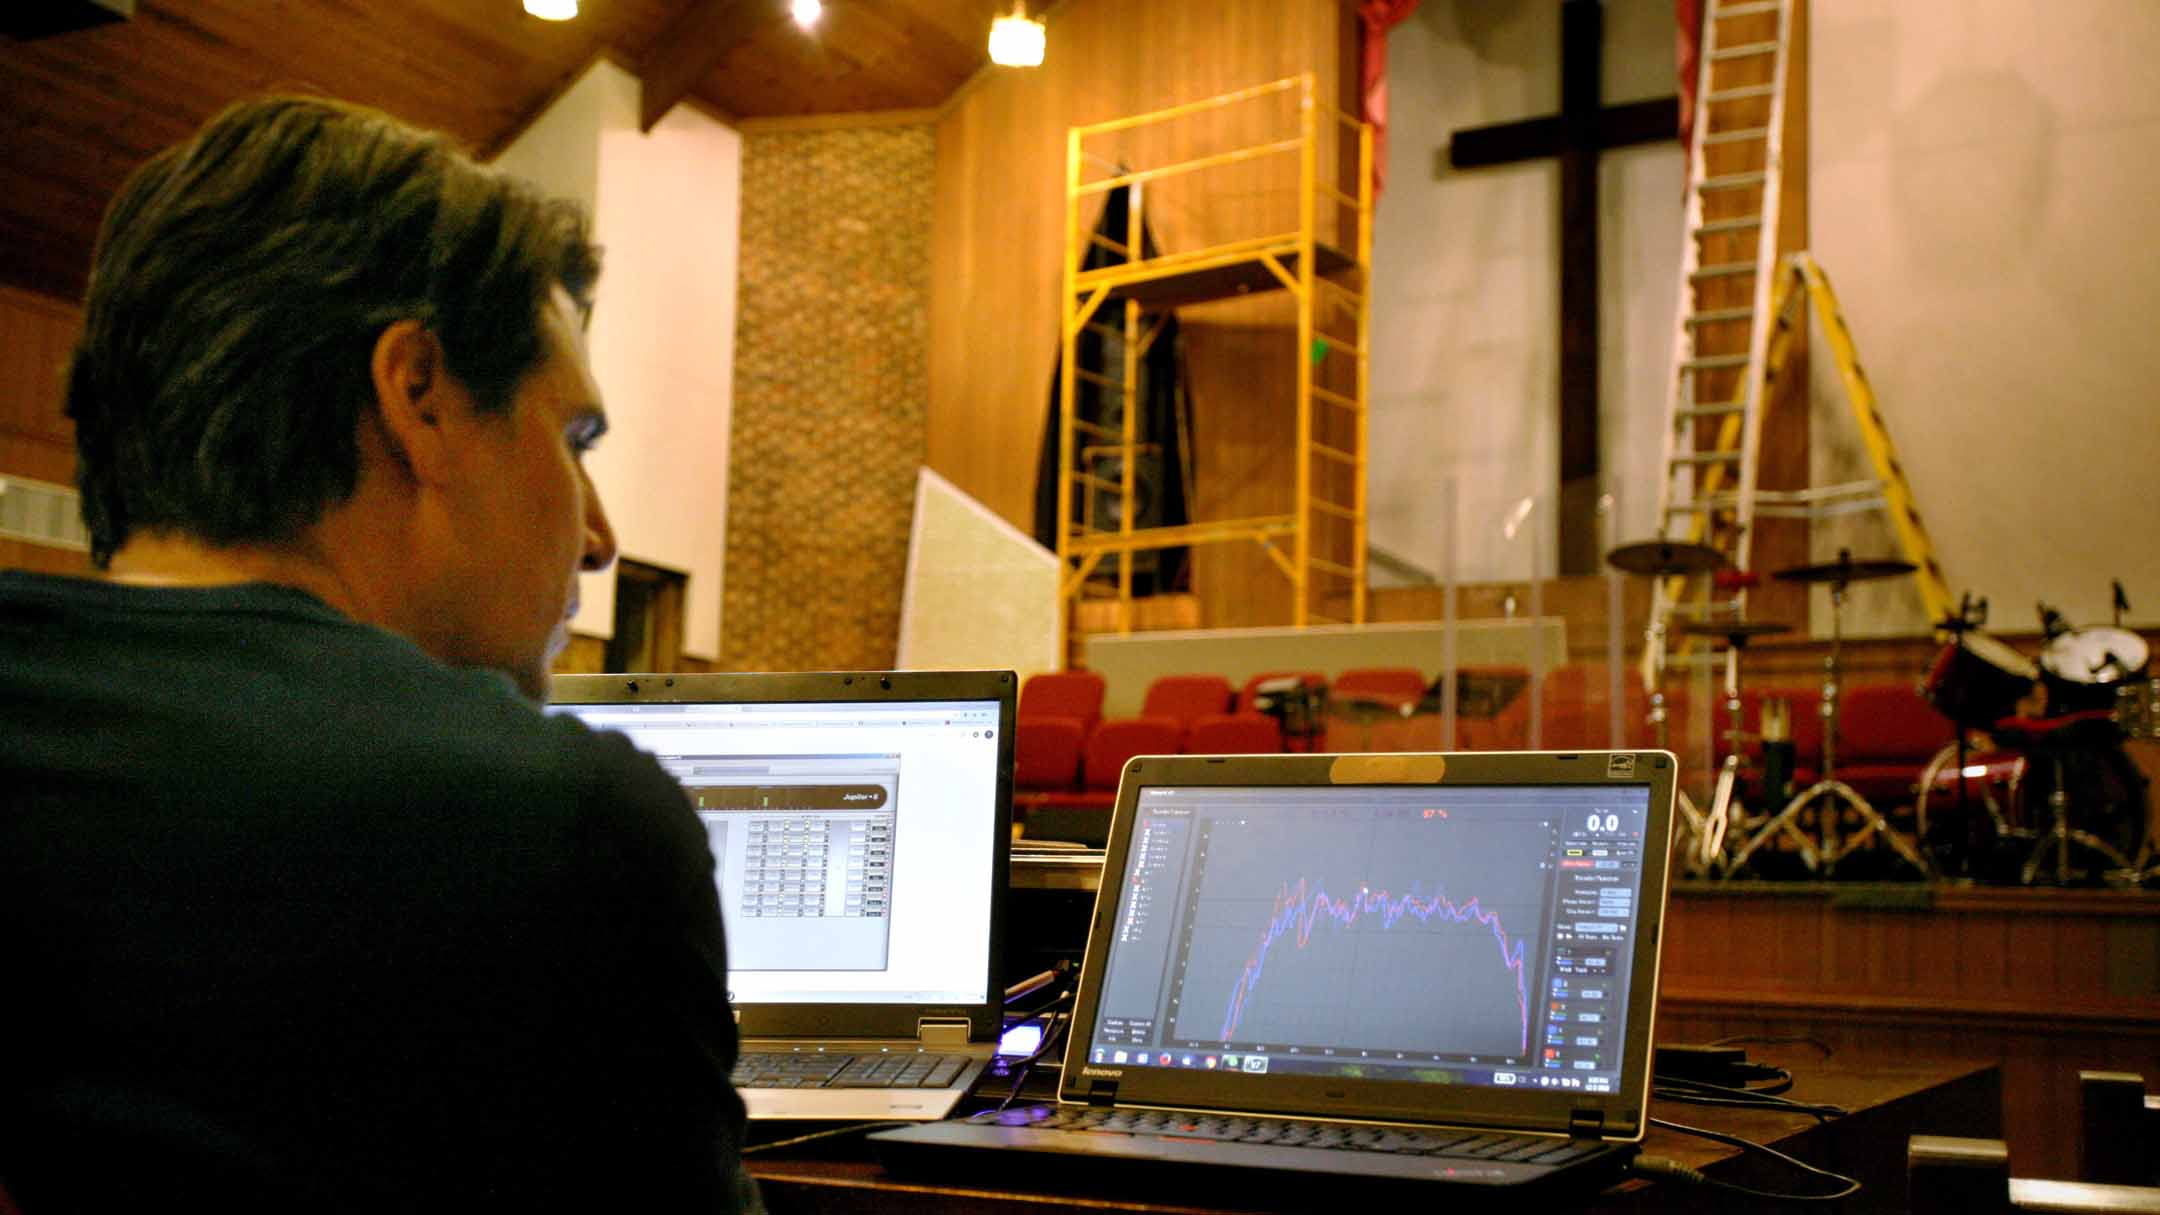 Church Audio System Calibration